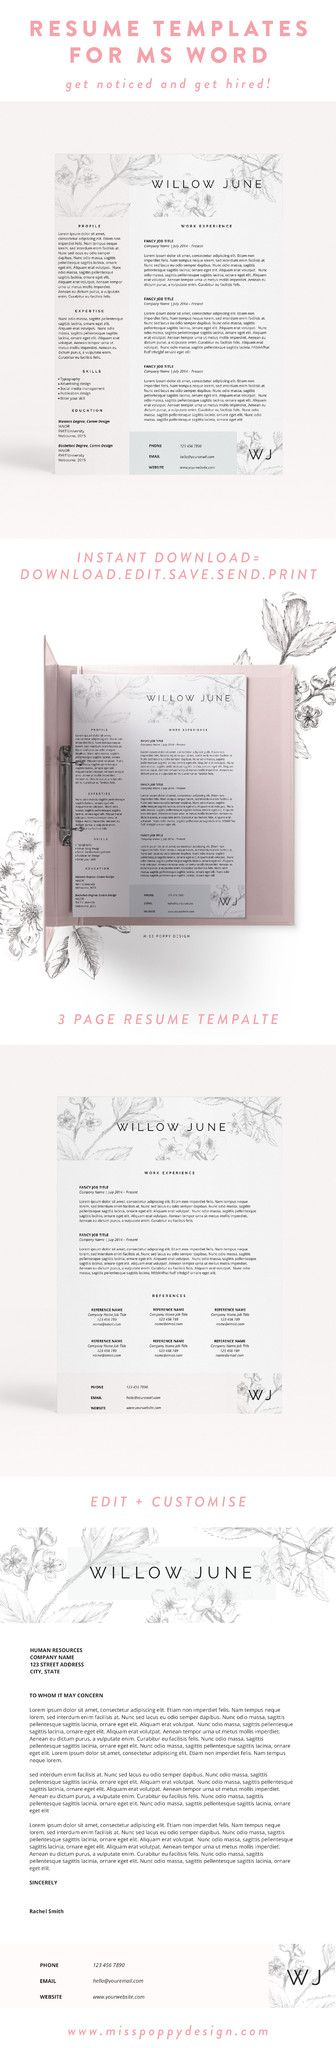 Best 25+ Resume layout ideas on Pinterest Resume ideas, Resume - resume layout tips